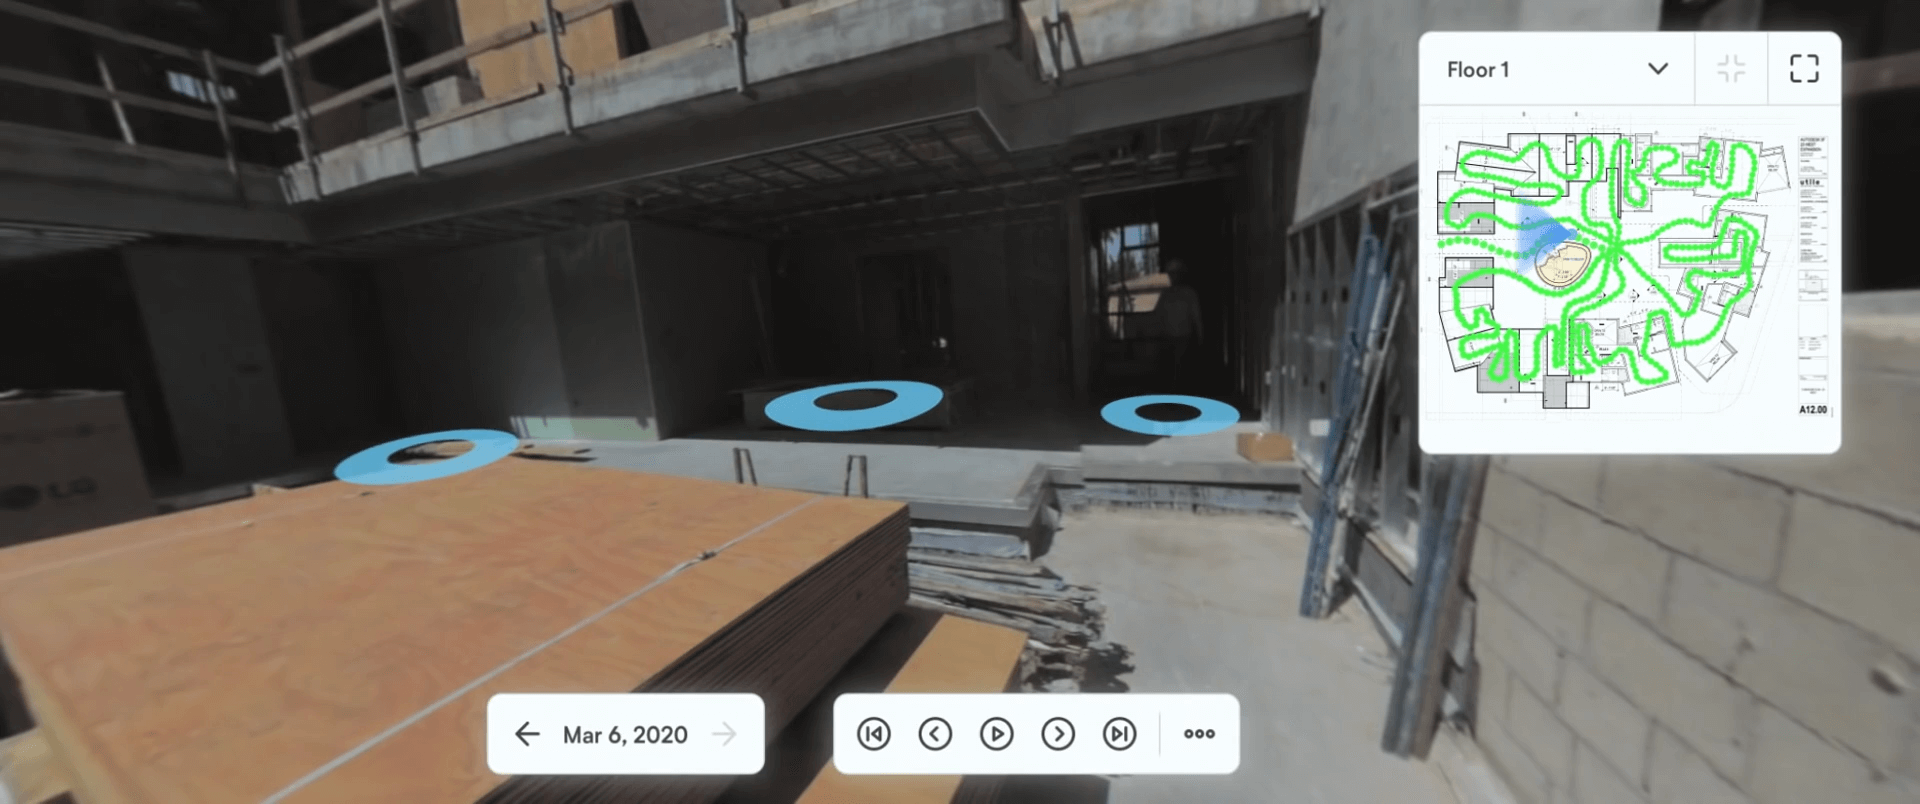 'Google Street View for Construction Sites' Coming to Australia after $15.9M Investment